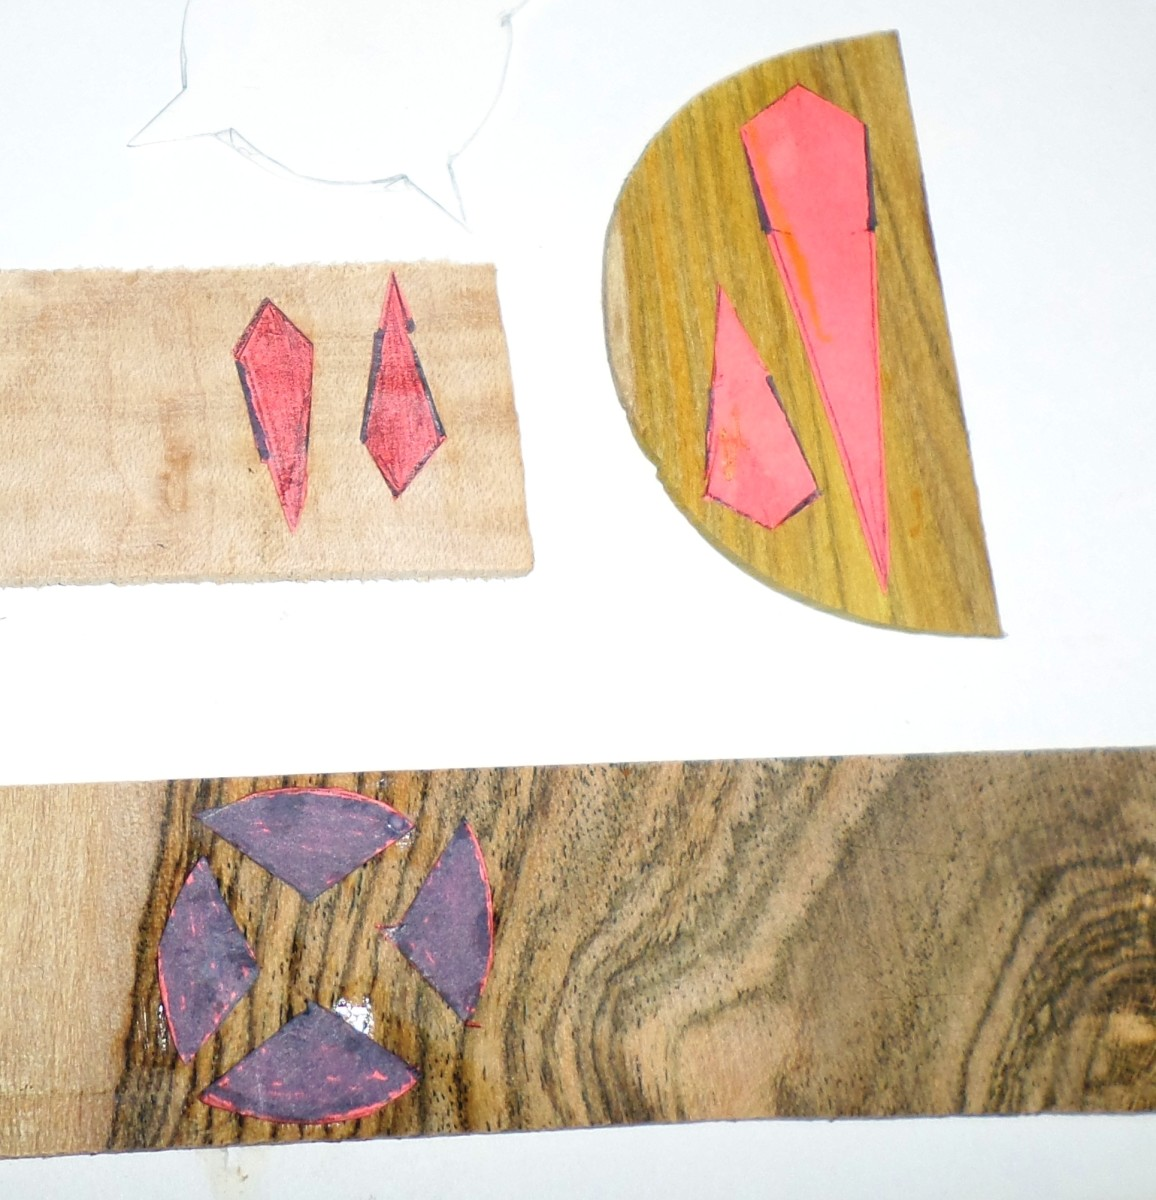 Making the peg head inlay.